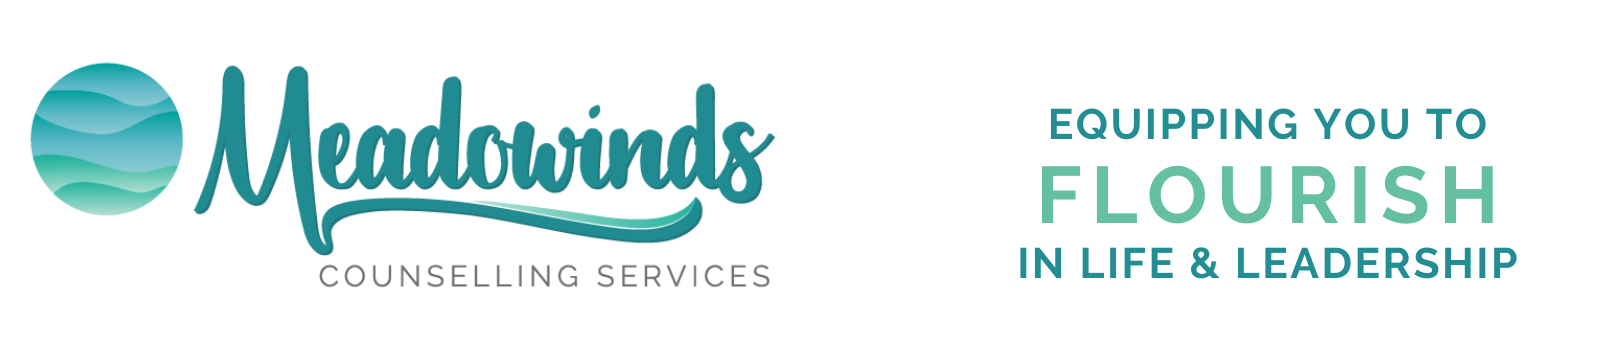 Meadowinds Counselling Services